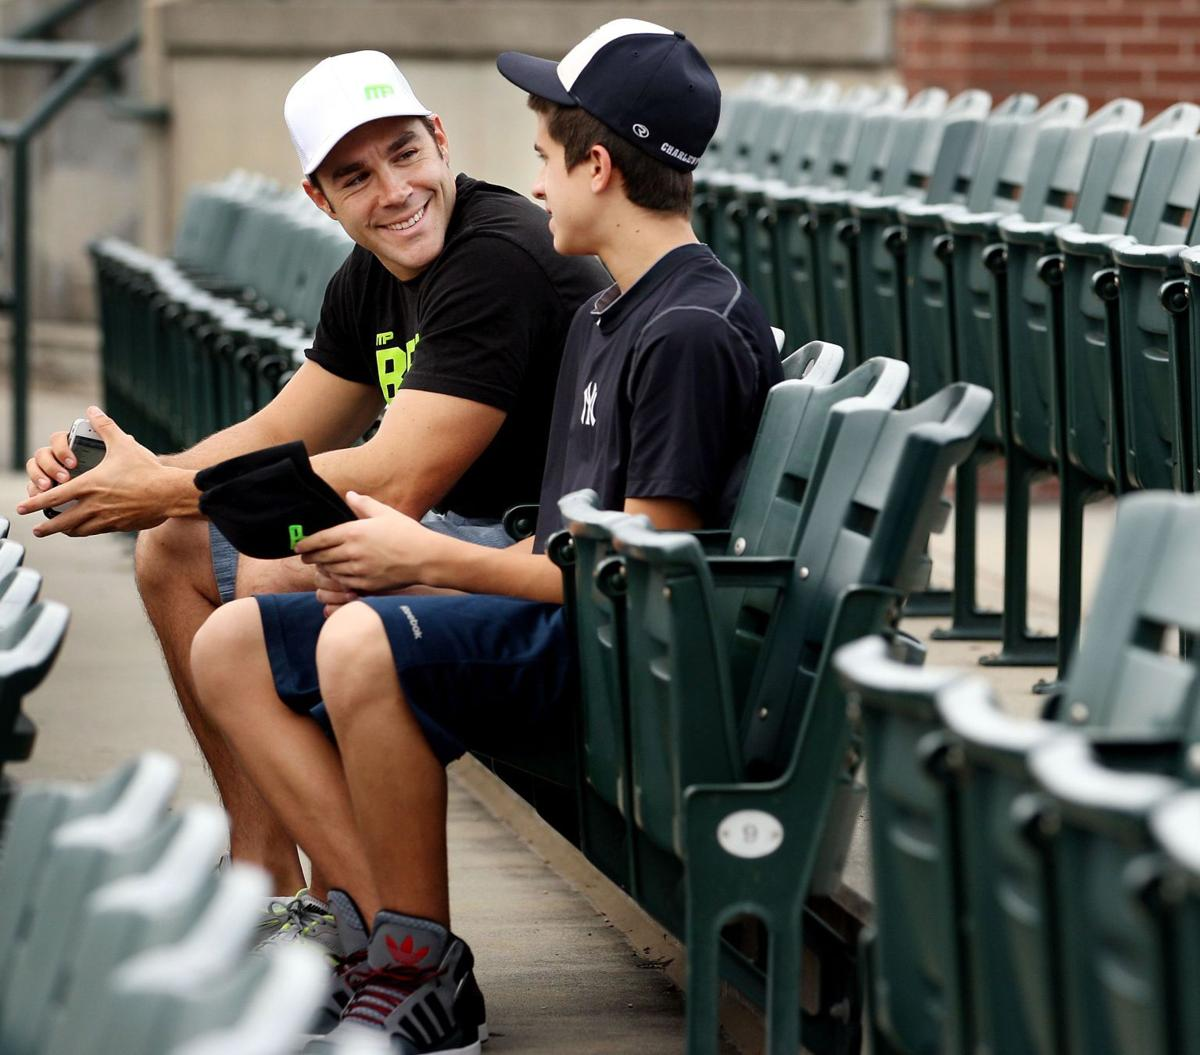 local programs transcend sports sports can draw lessons from programmentoring through sports area coaches filling mentor drew ciccarelli